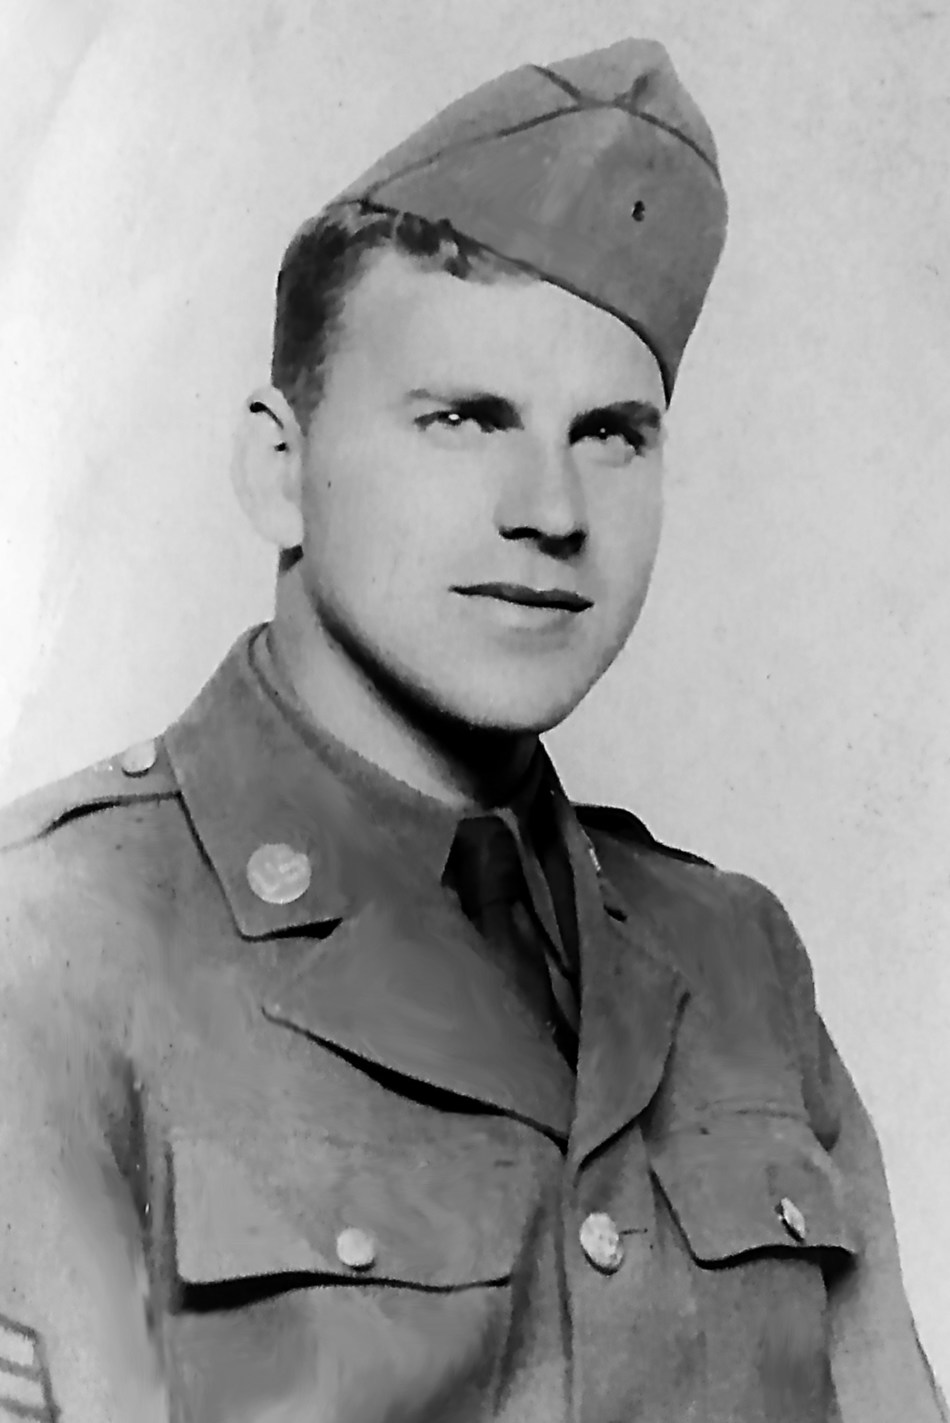 Alkabo native Vern Olson served in an armored infantry unit as a tank commander, as well as in the Transportation Corps, in Europe during WWII.